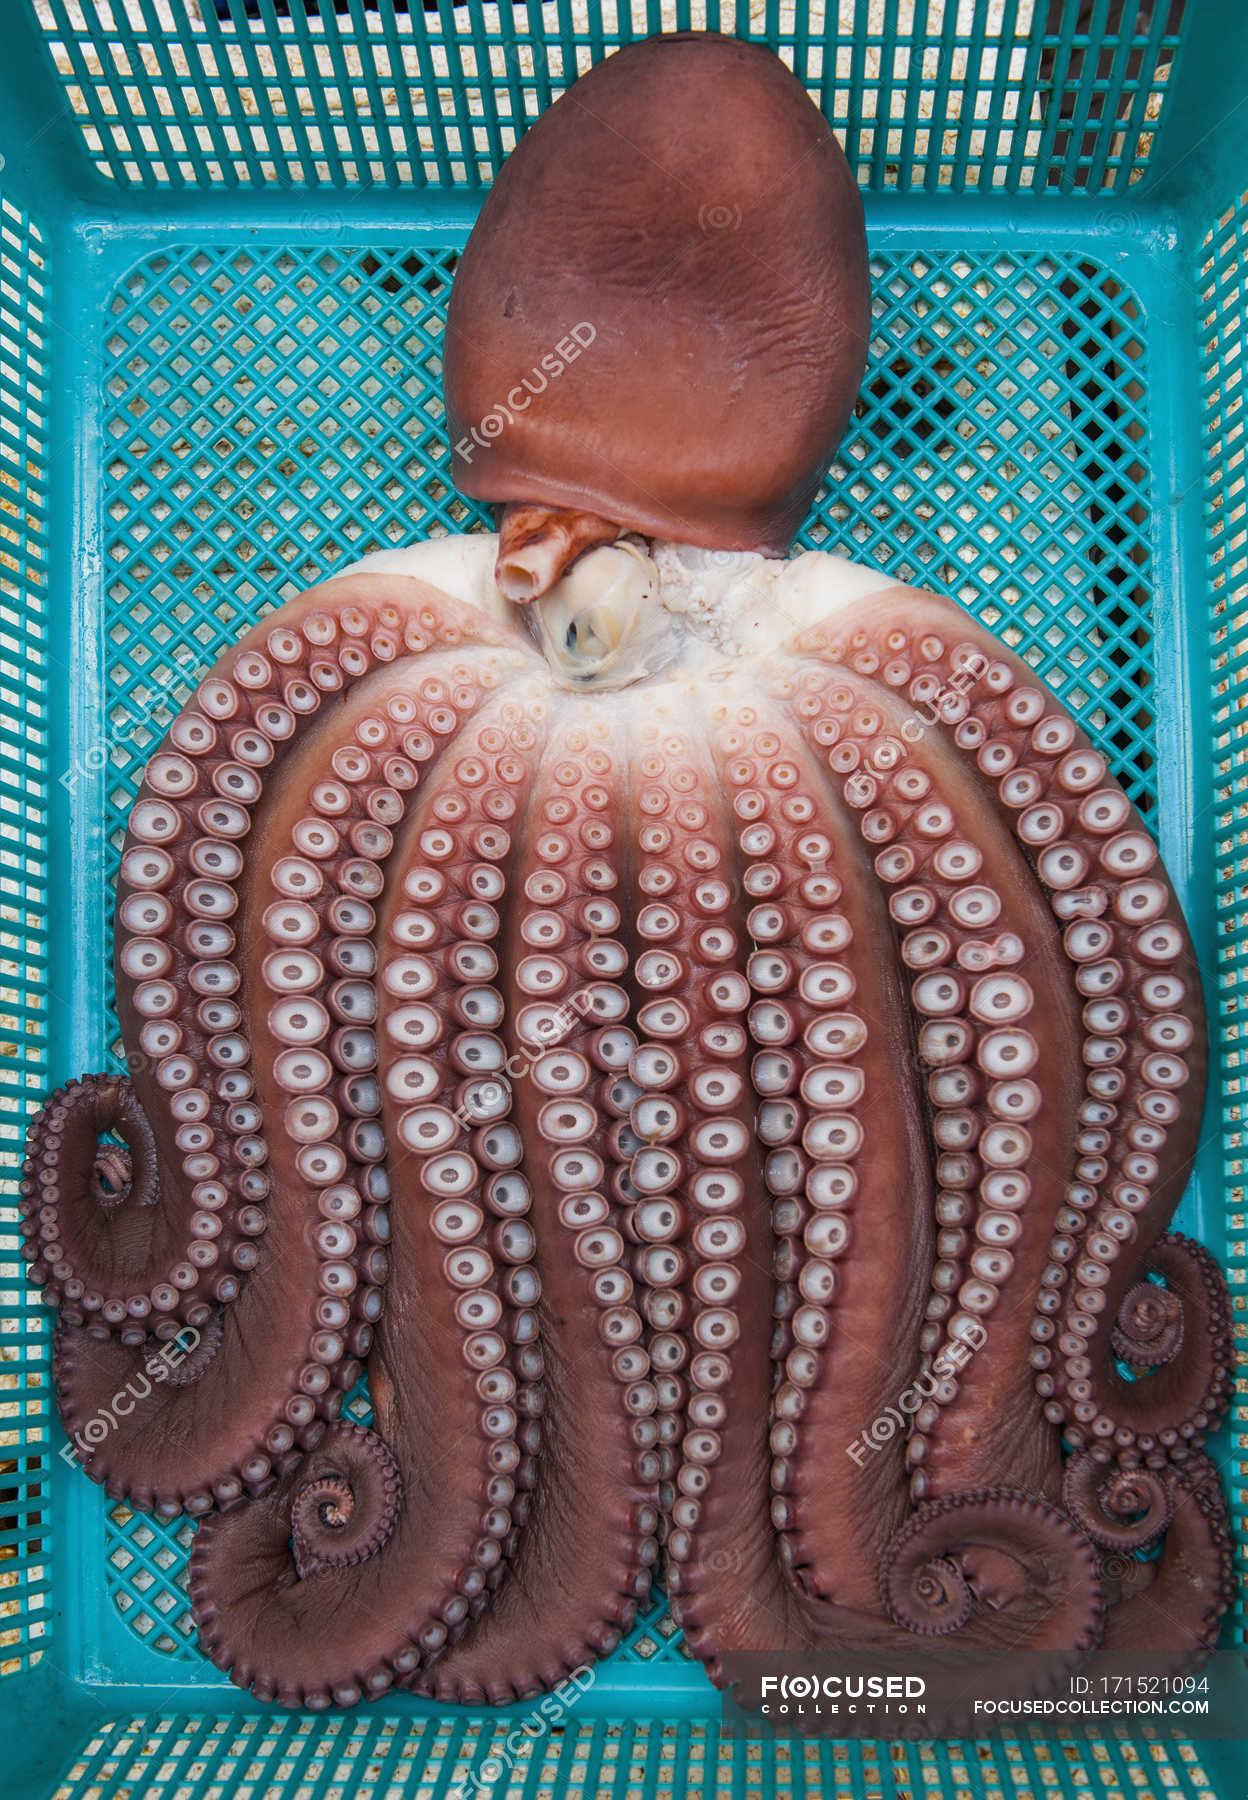 Octopus in blue basket — Stock Photo | #171521094